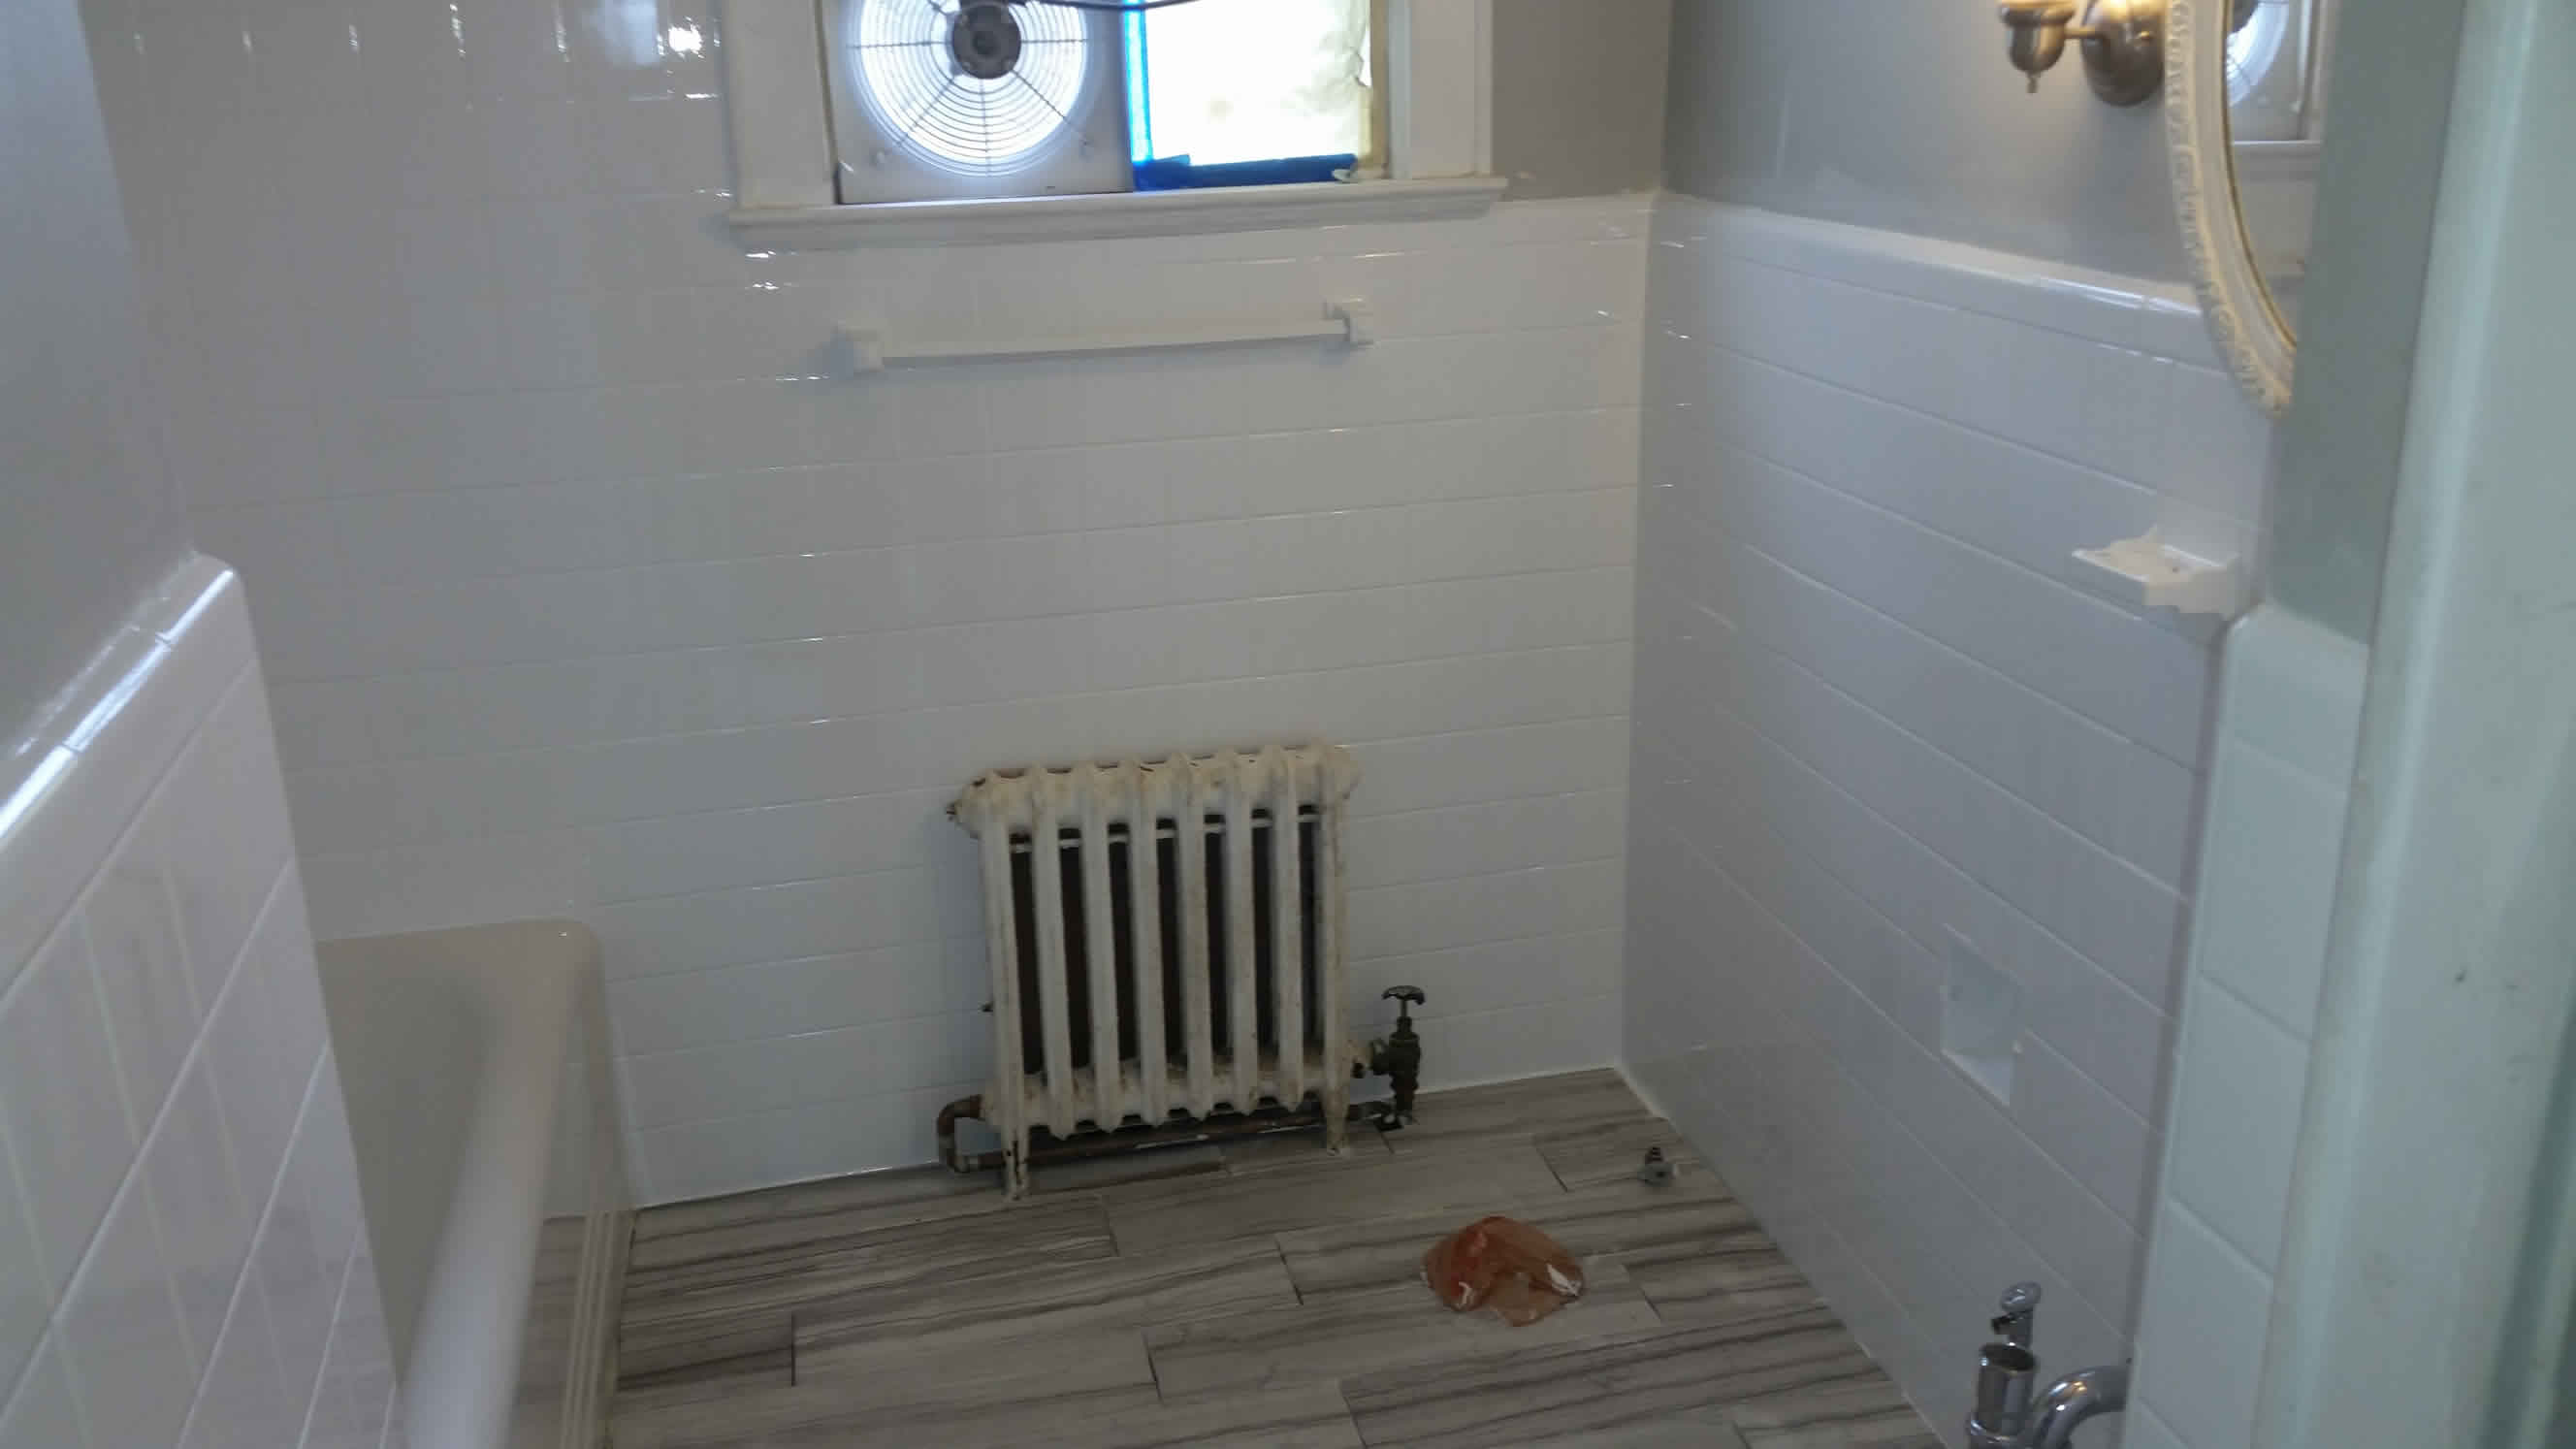 Transform an out-of-date bathroom with a bright new look! Call us today.